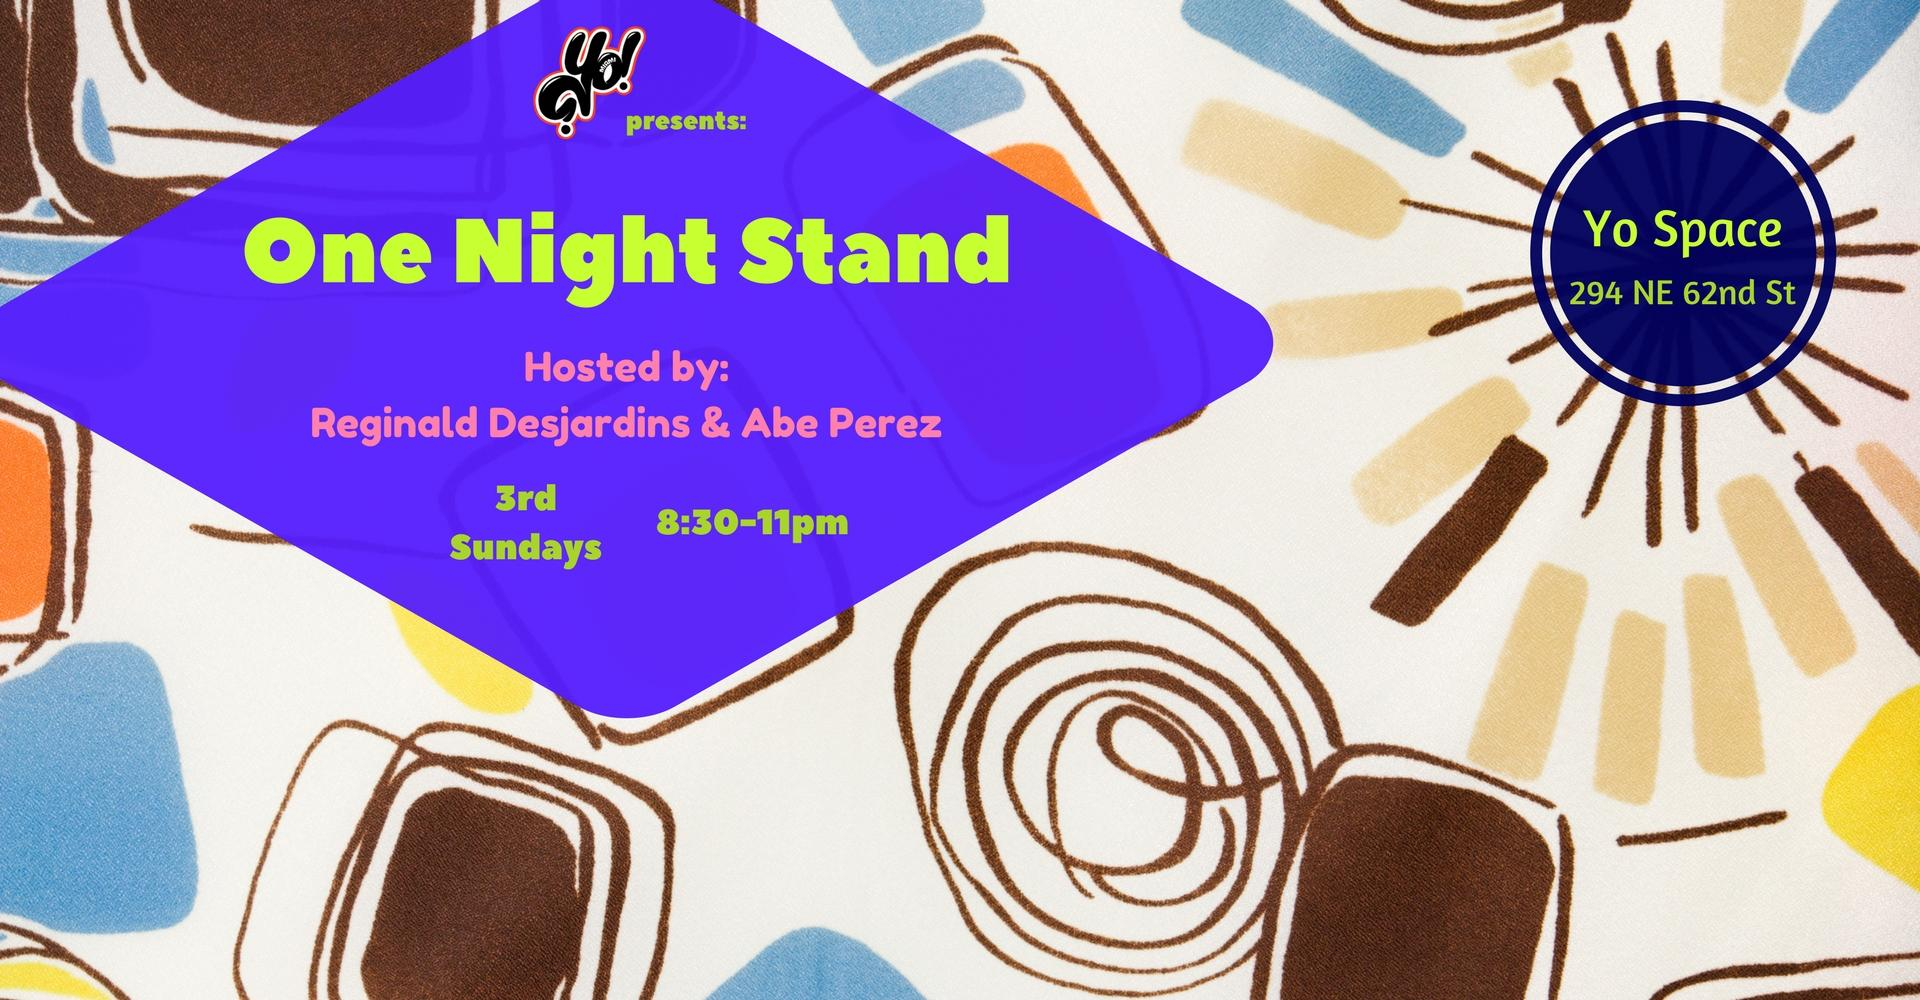 One Night Stand Comedy Show